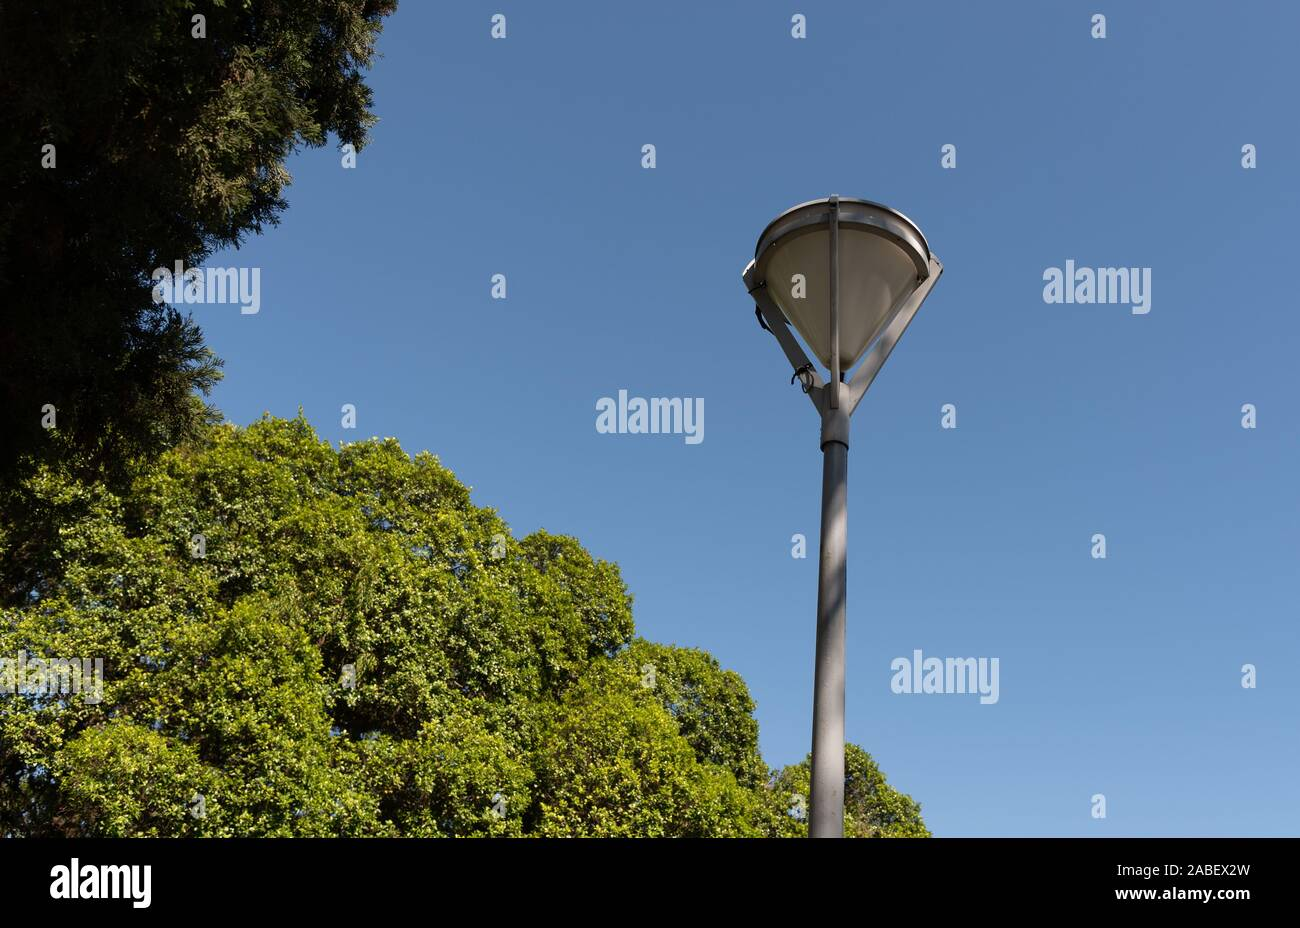 An old light fixture component of the public lighting of a square in southern Brazil. Lighting artifact and electric power. Old object. Stock Photo